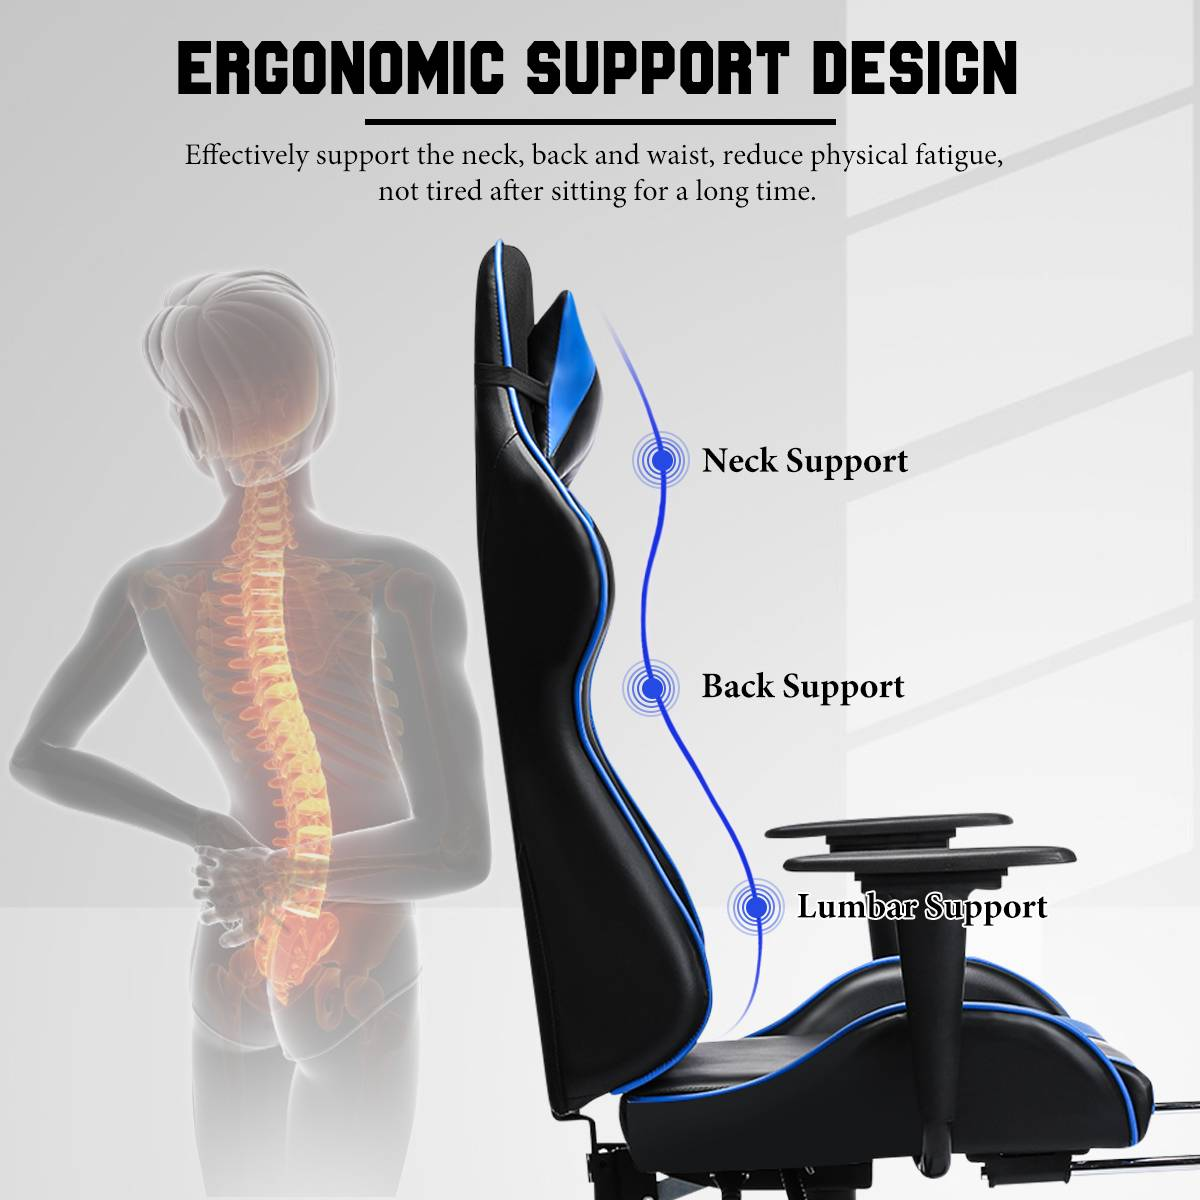 H90bb9ffa9f5f4091baef31b0687328cf0 - 155° Gaming Chairs with Footrest Ergonomic Office Chair Adjustable Swivel Leather High Back Computer Desk Chair with Headrest